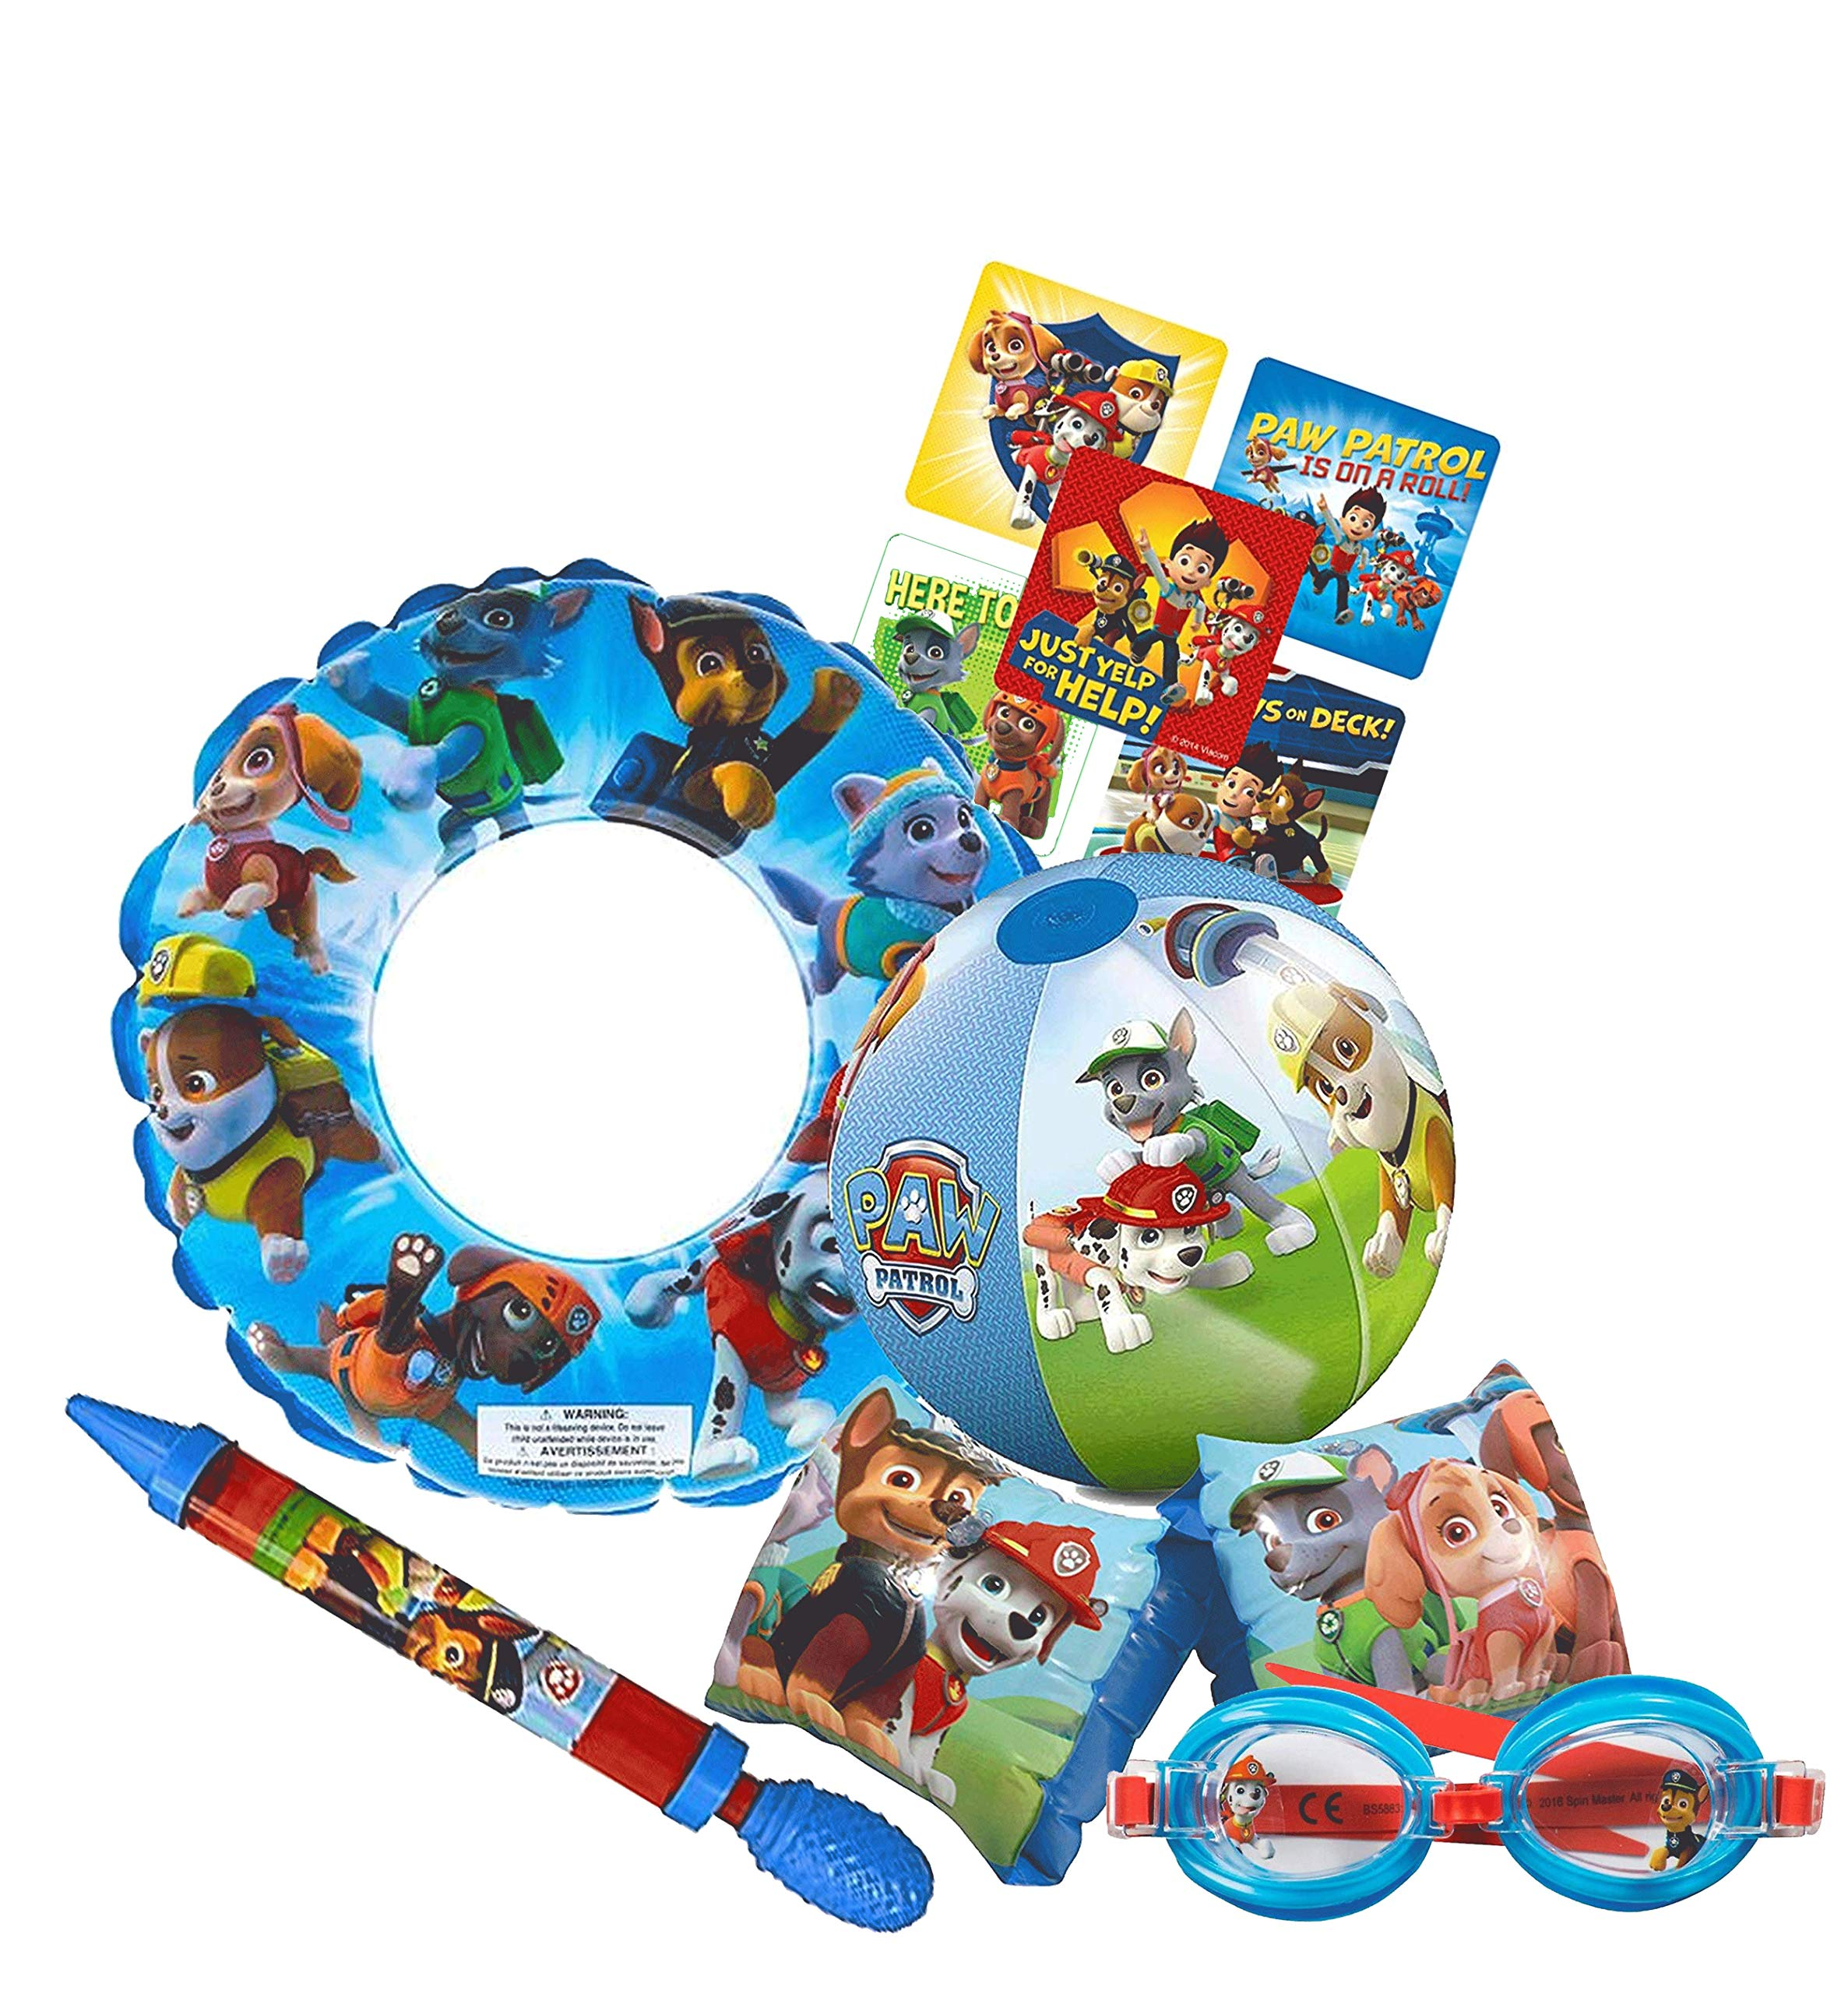 UPD Licensed Swim Sets! Pool Toys Bundle! Swim Ring, Arm Floats, Beach Ball and Water Blaster in All Your Favorite Characters! (5 Piece, Paw Patrol) by UPD